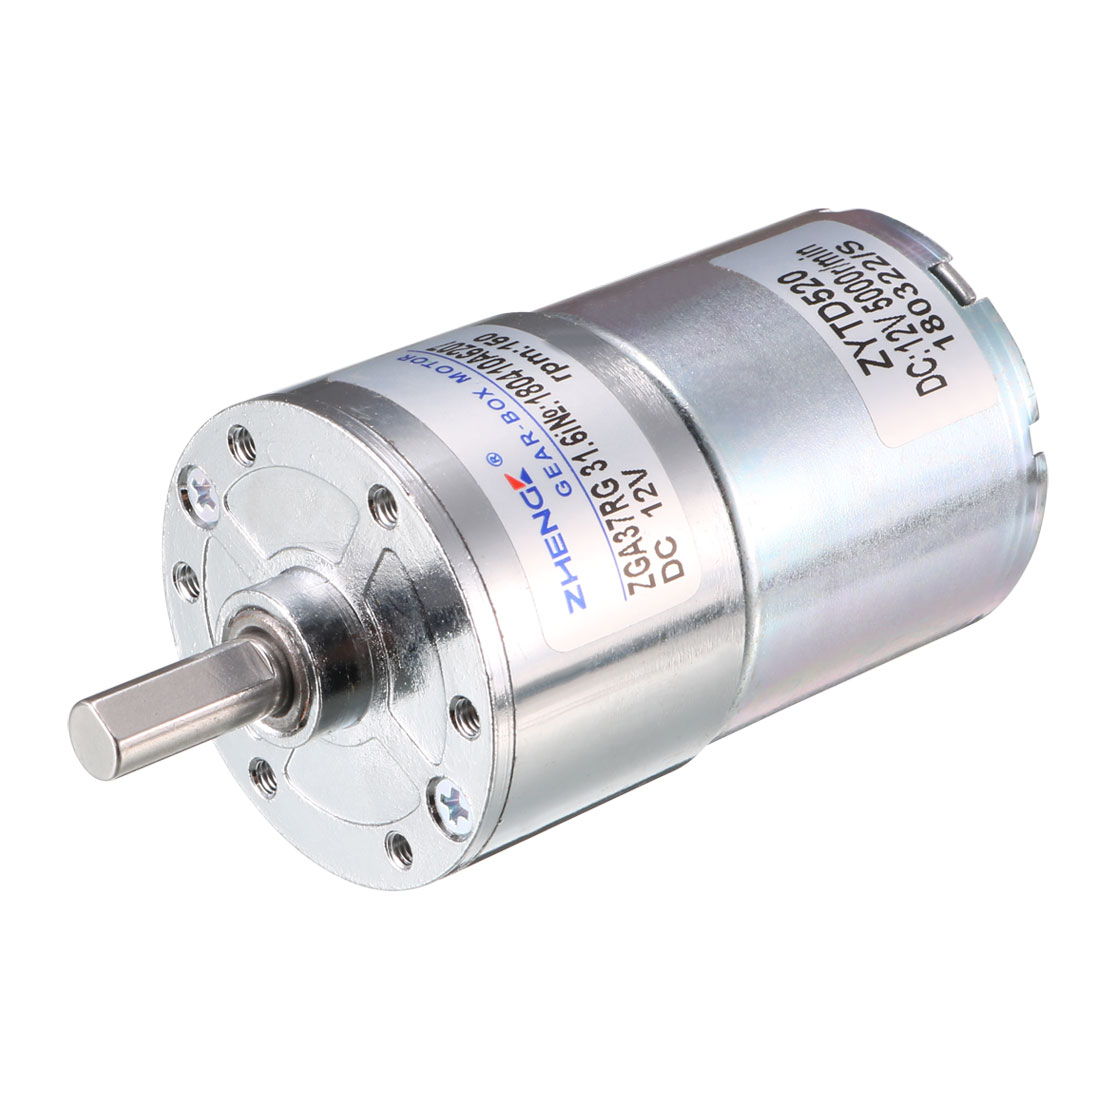 DC 12V 150RPM Output High Torque Electric Magnetic Geared Box Speeduce Motor